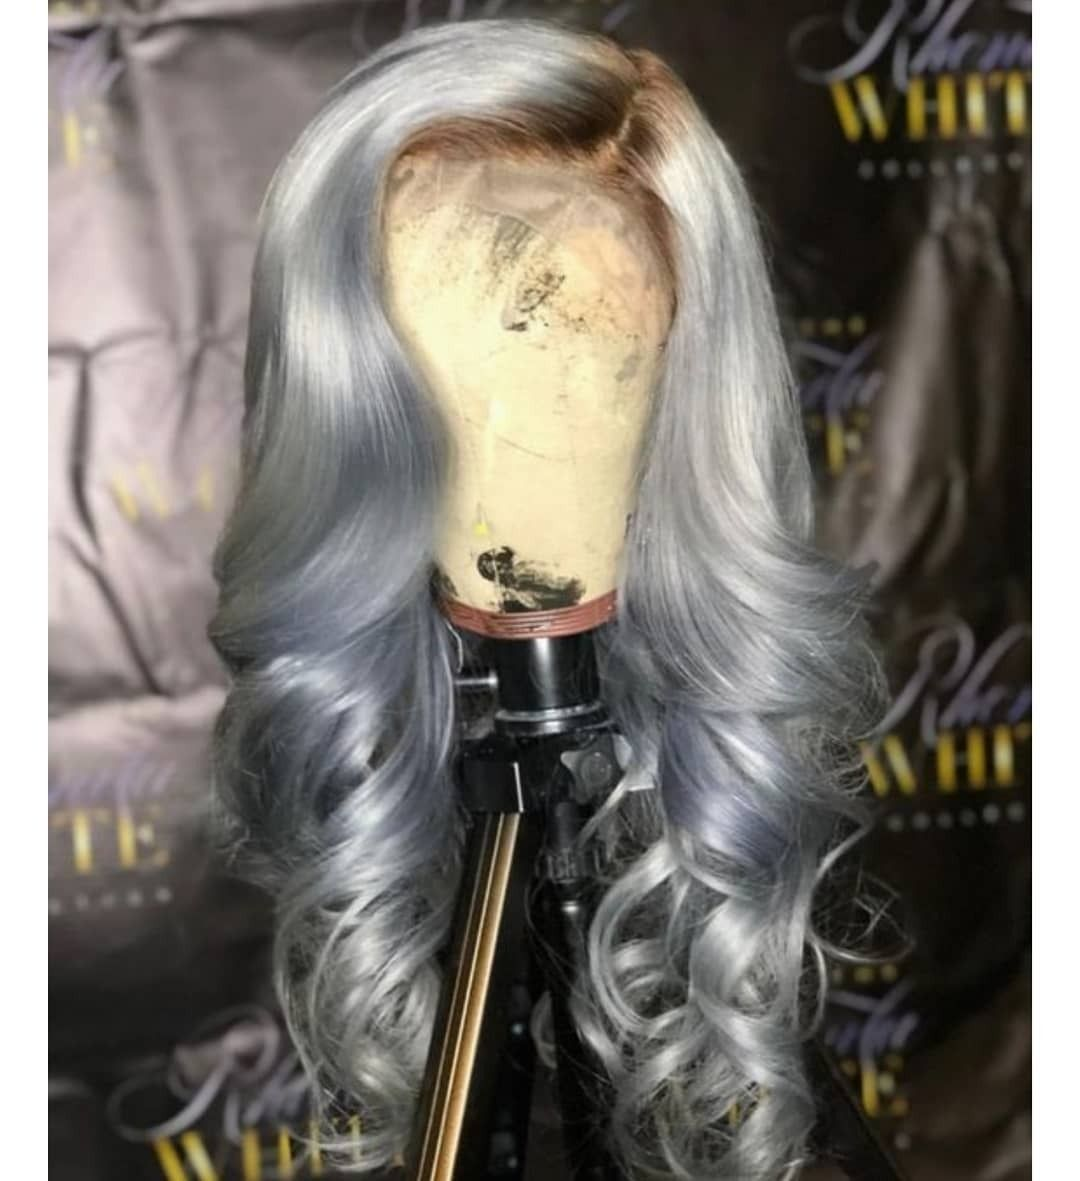 Gray Hair Wigs For African American Women Princess Jasmine Wig Places That Sell Wigs Near Me Cool Gray Hair Rihanna Wig White Girl Wigs